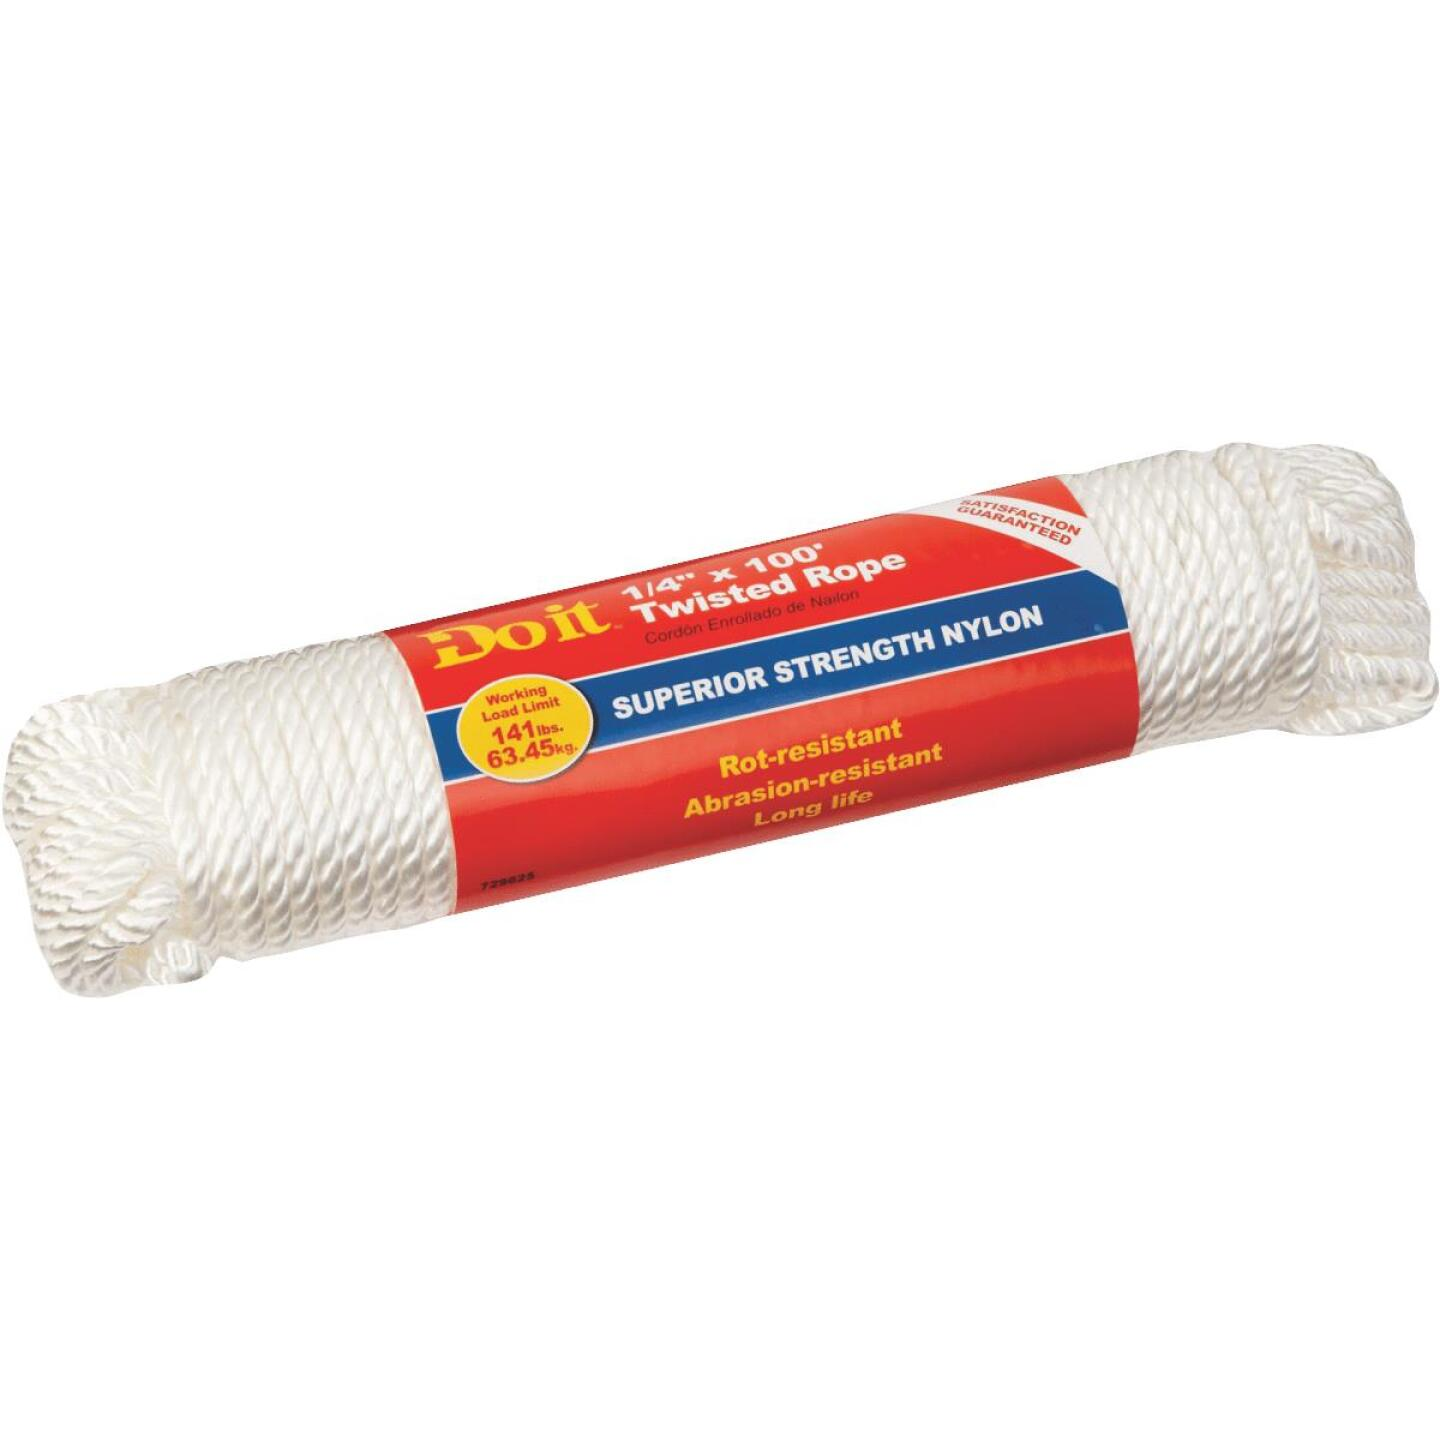 Do it 1/4 In. x 100 Ft. White Twisted Nylon Packaged Rope Image 1